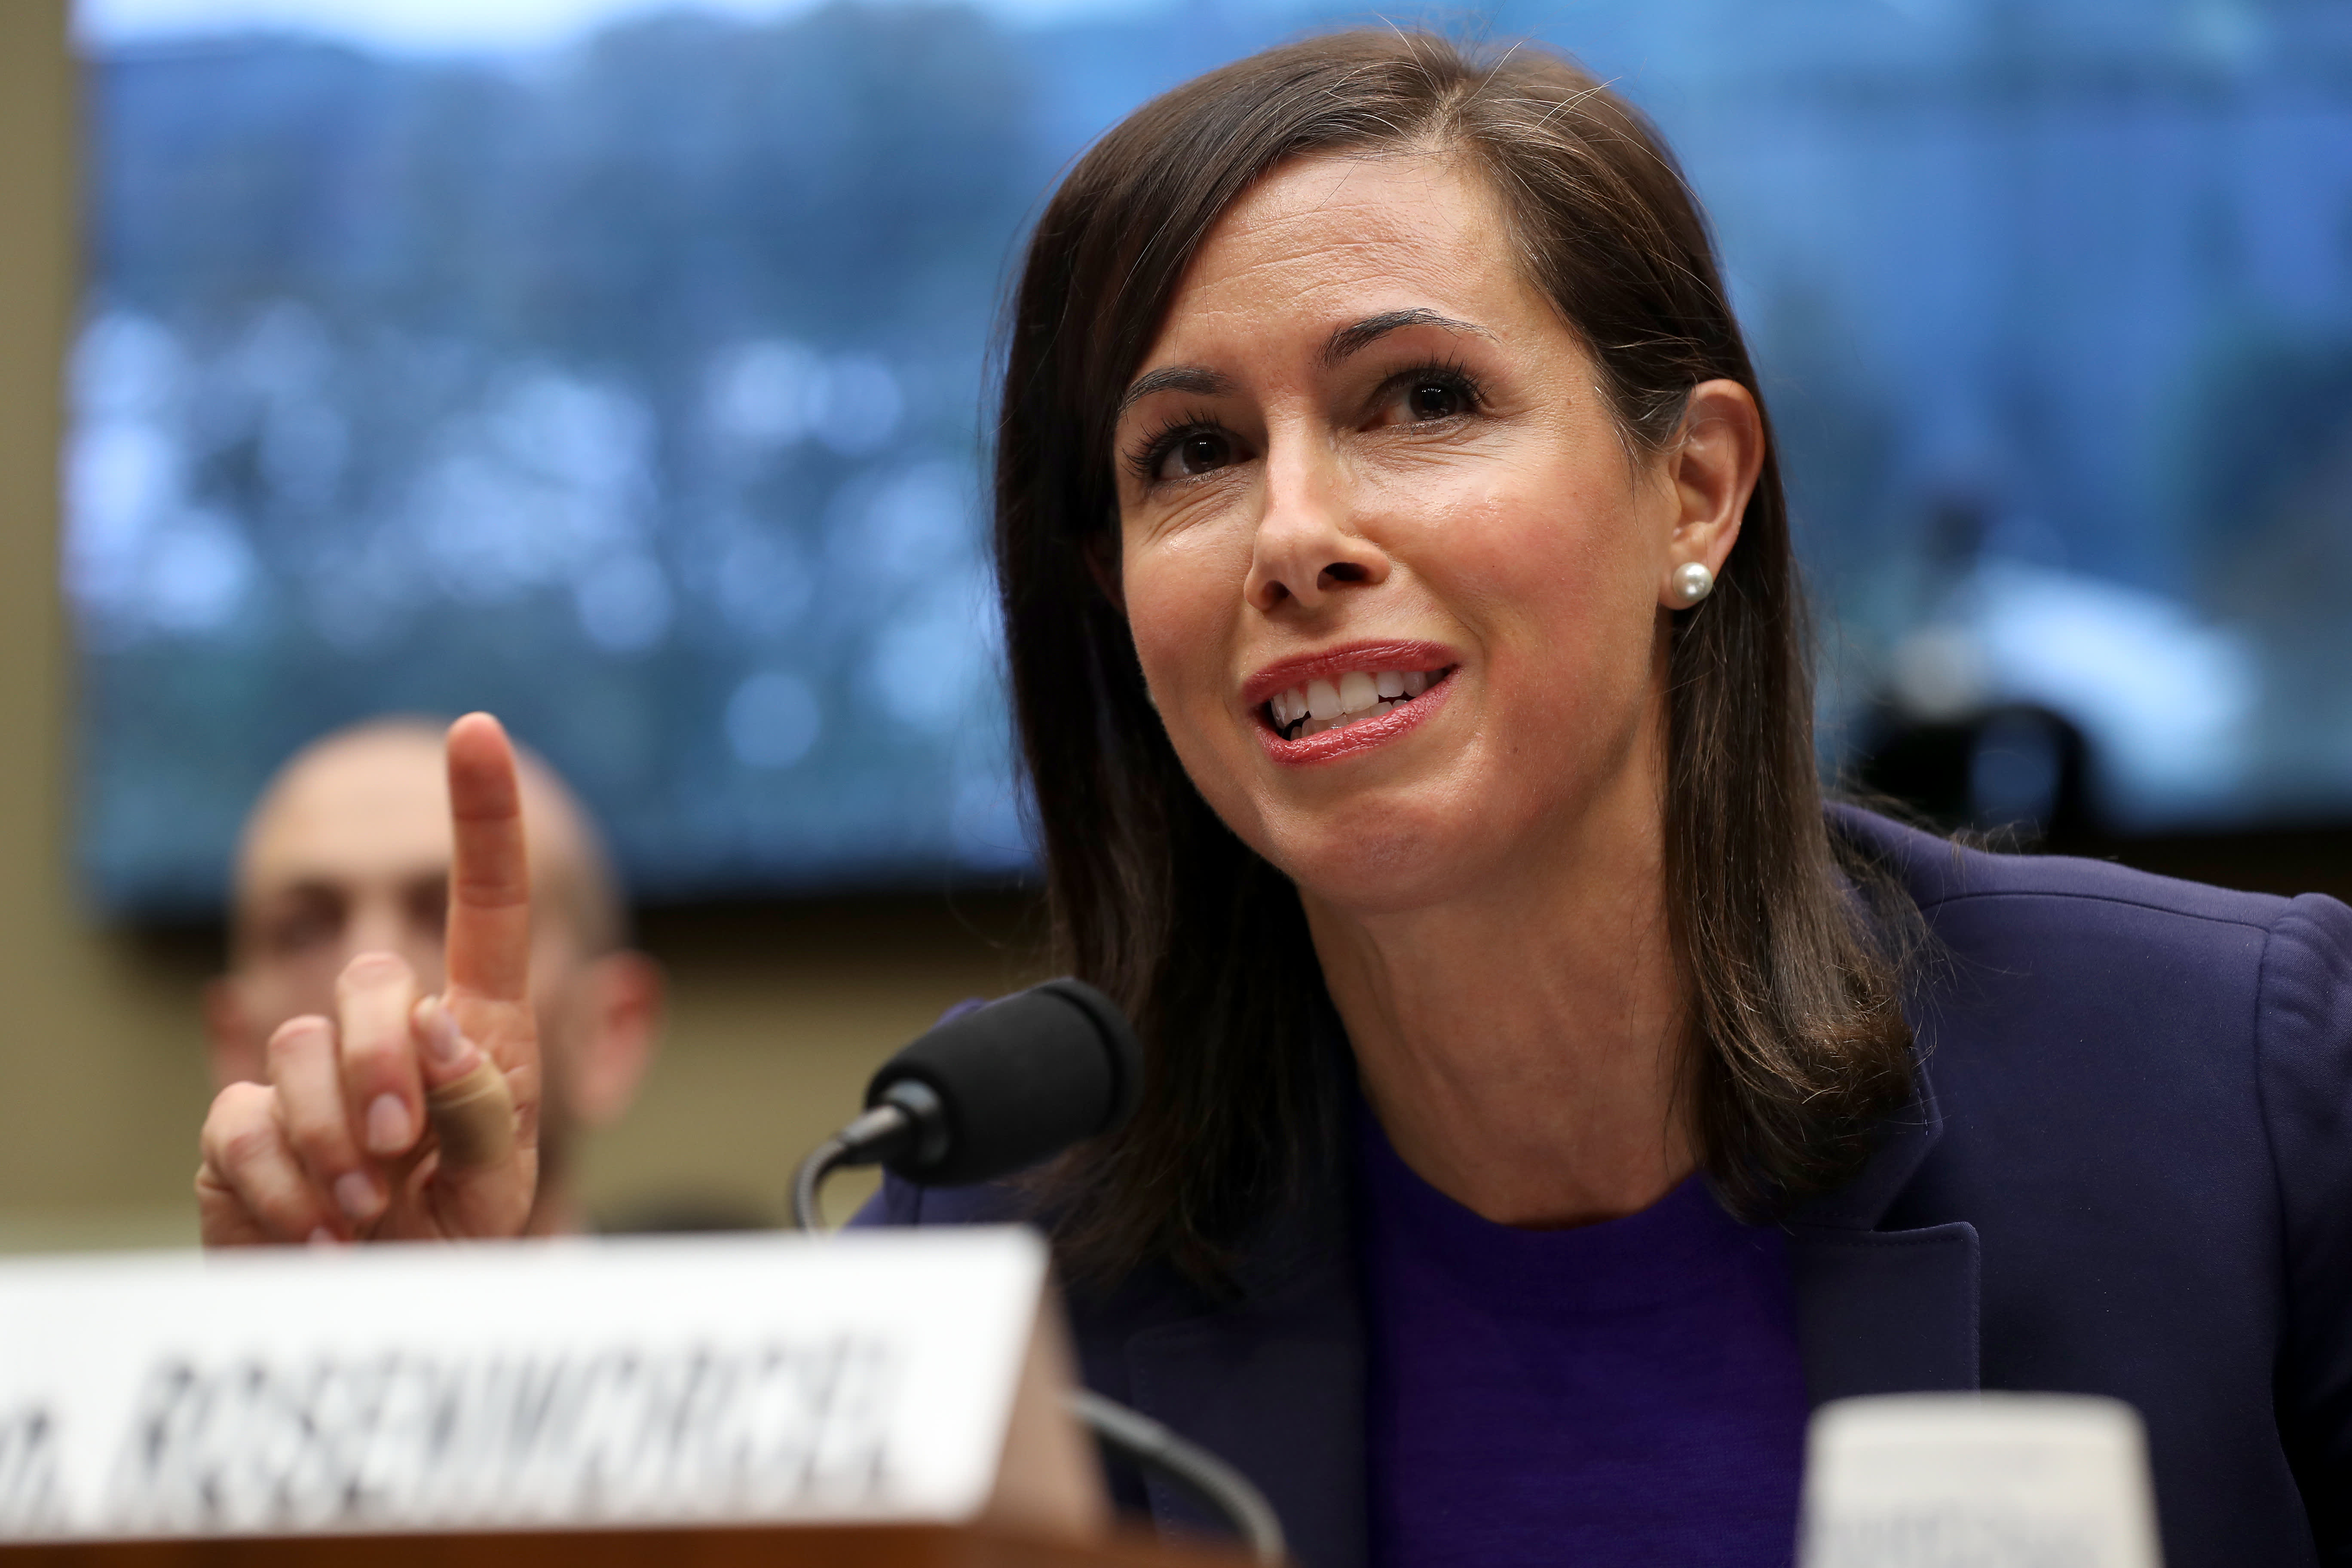 Biden nominates FCC chair, new commissioner to give Democrats majority - CNBC : Biden will name FCC acting Chair Jessica Rosenworcel as permanent chair and former FCC official Gigi Sohn as the fifth commissioner, the White House said.  | Tranquility 國際社群